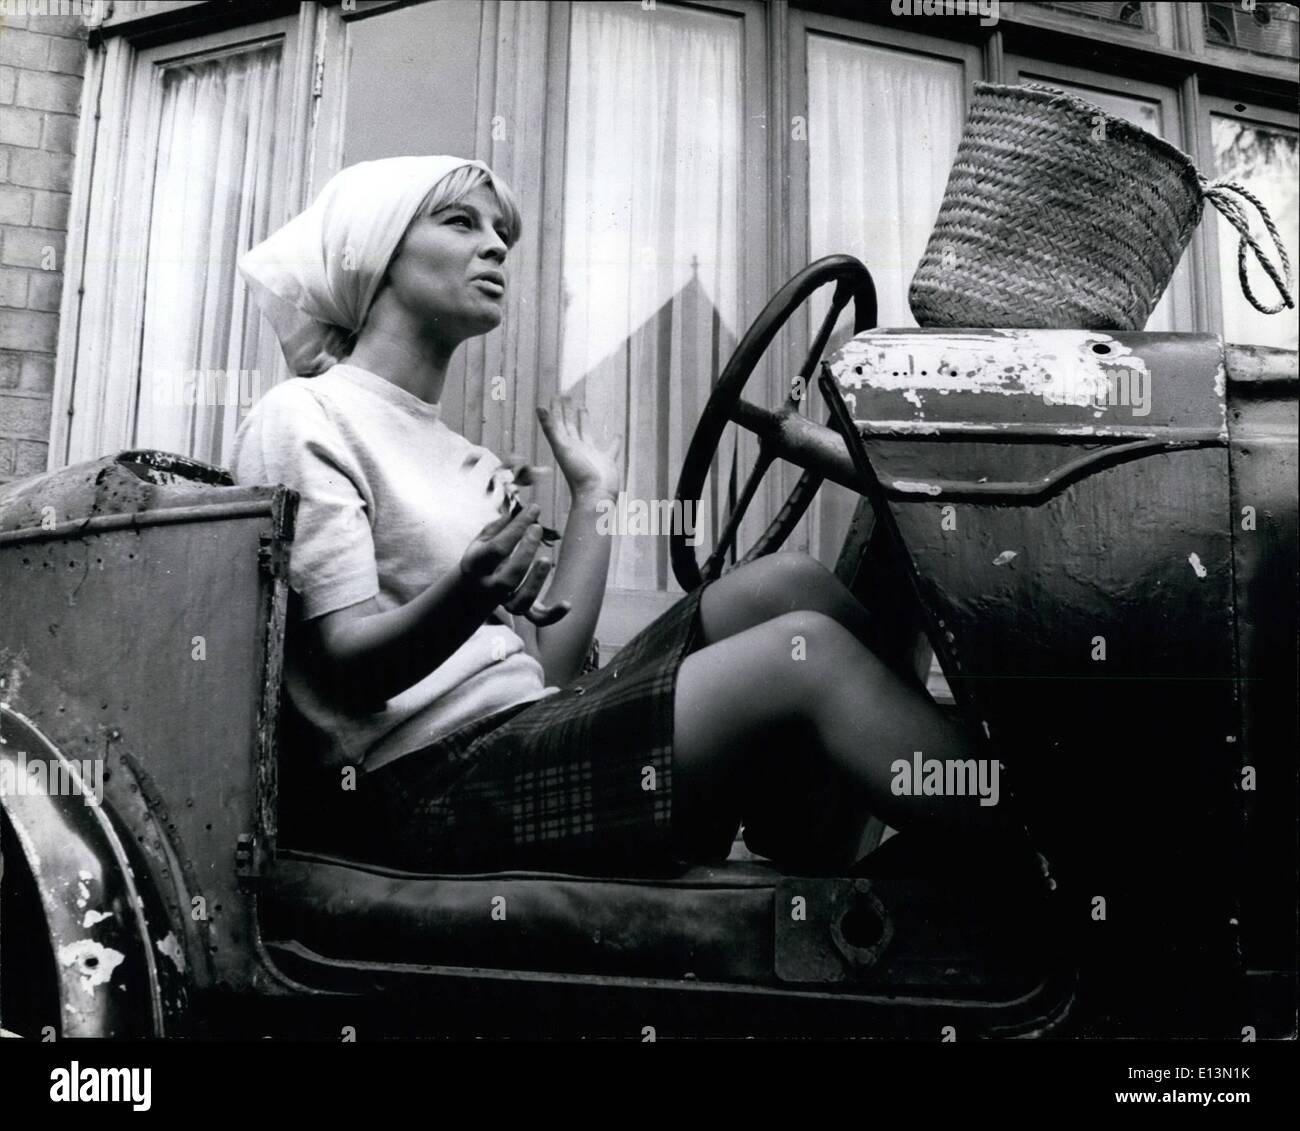 Mar. 02, 2012 - Julie Christie, has no transport of her own... but her landlady's mechanic son Paul Cetti has - Stock Image